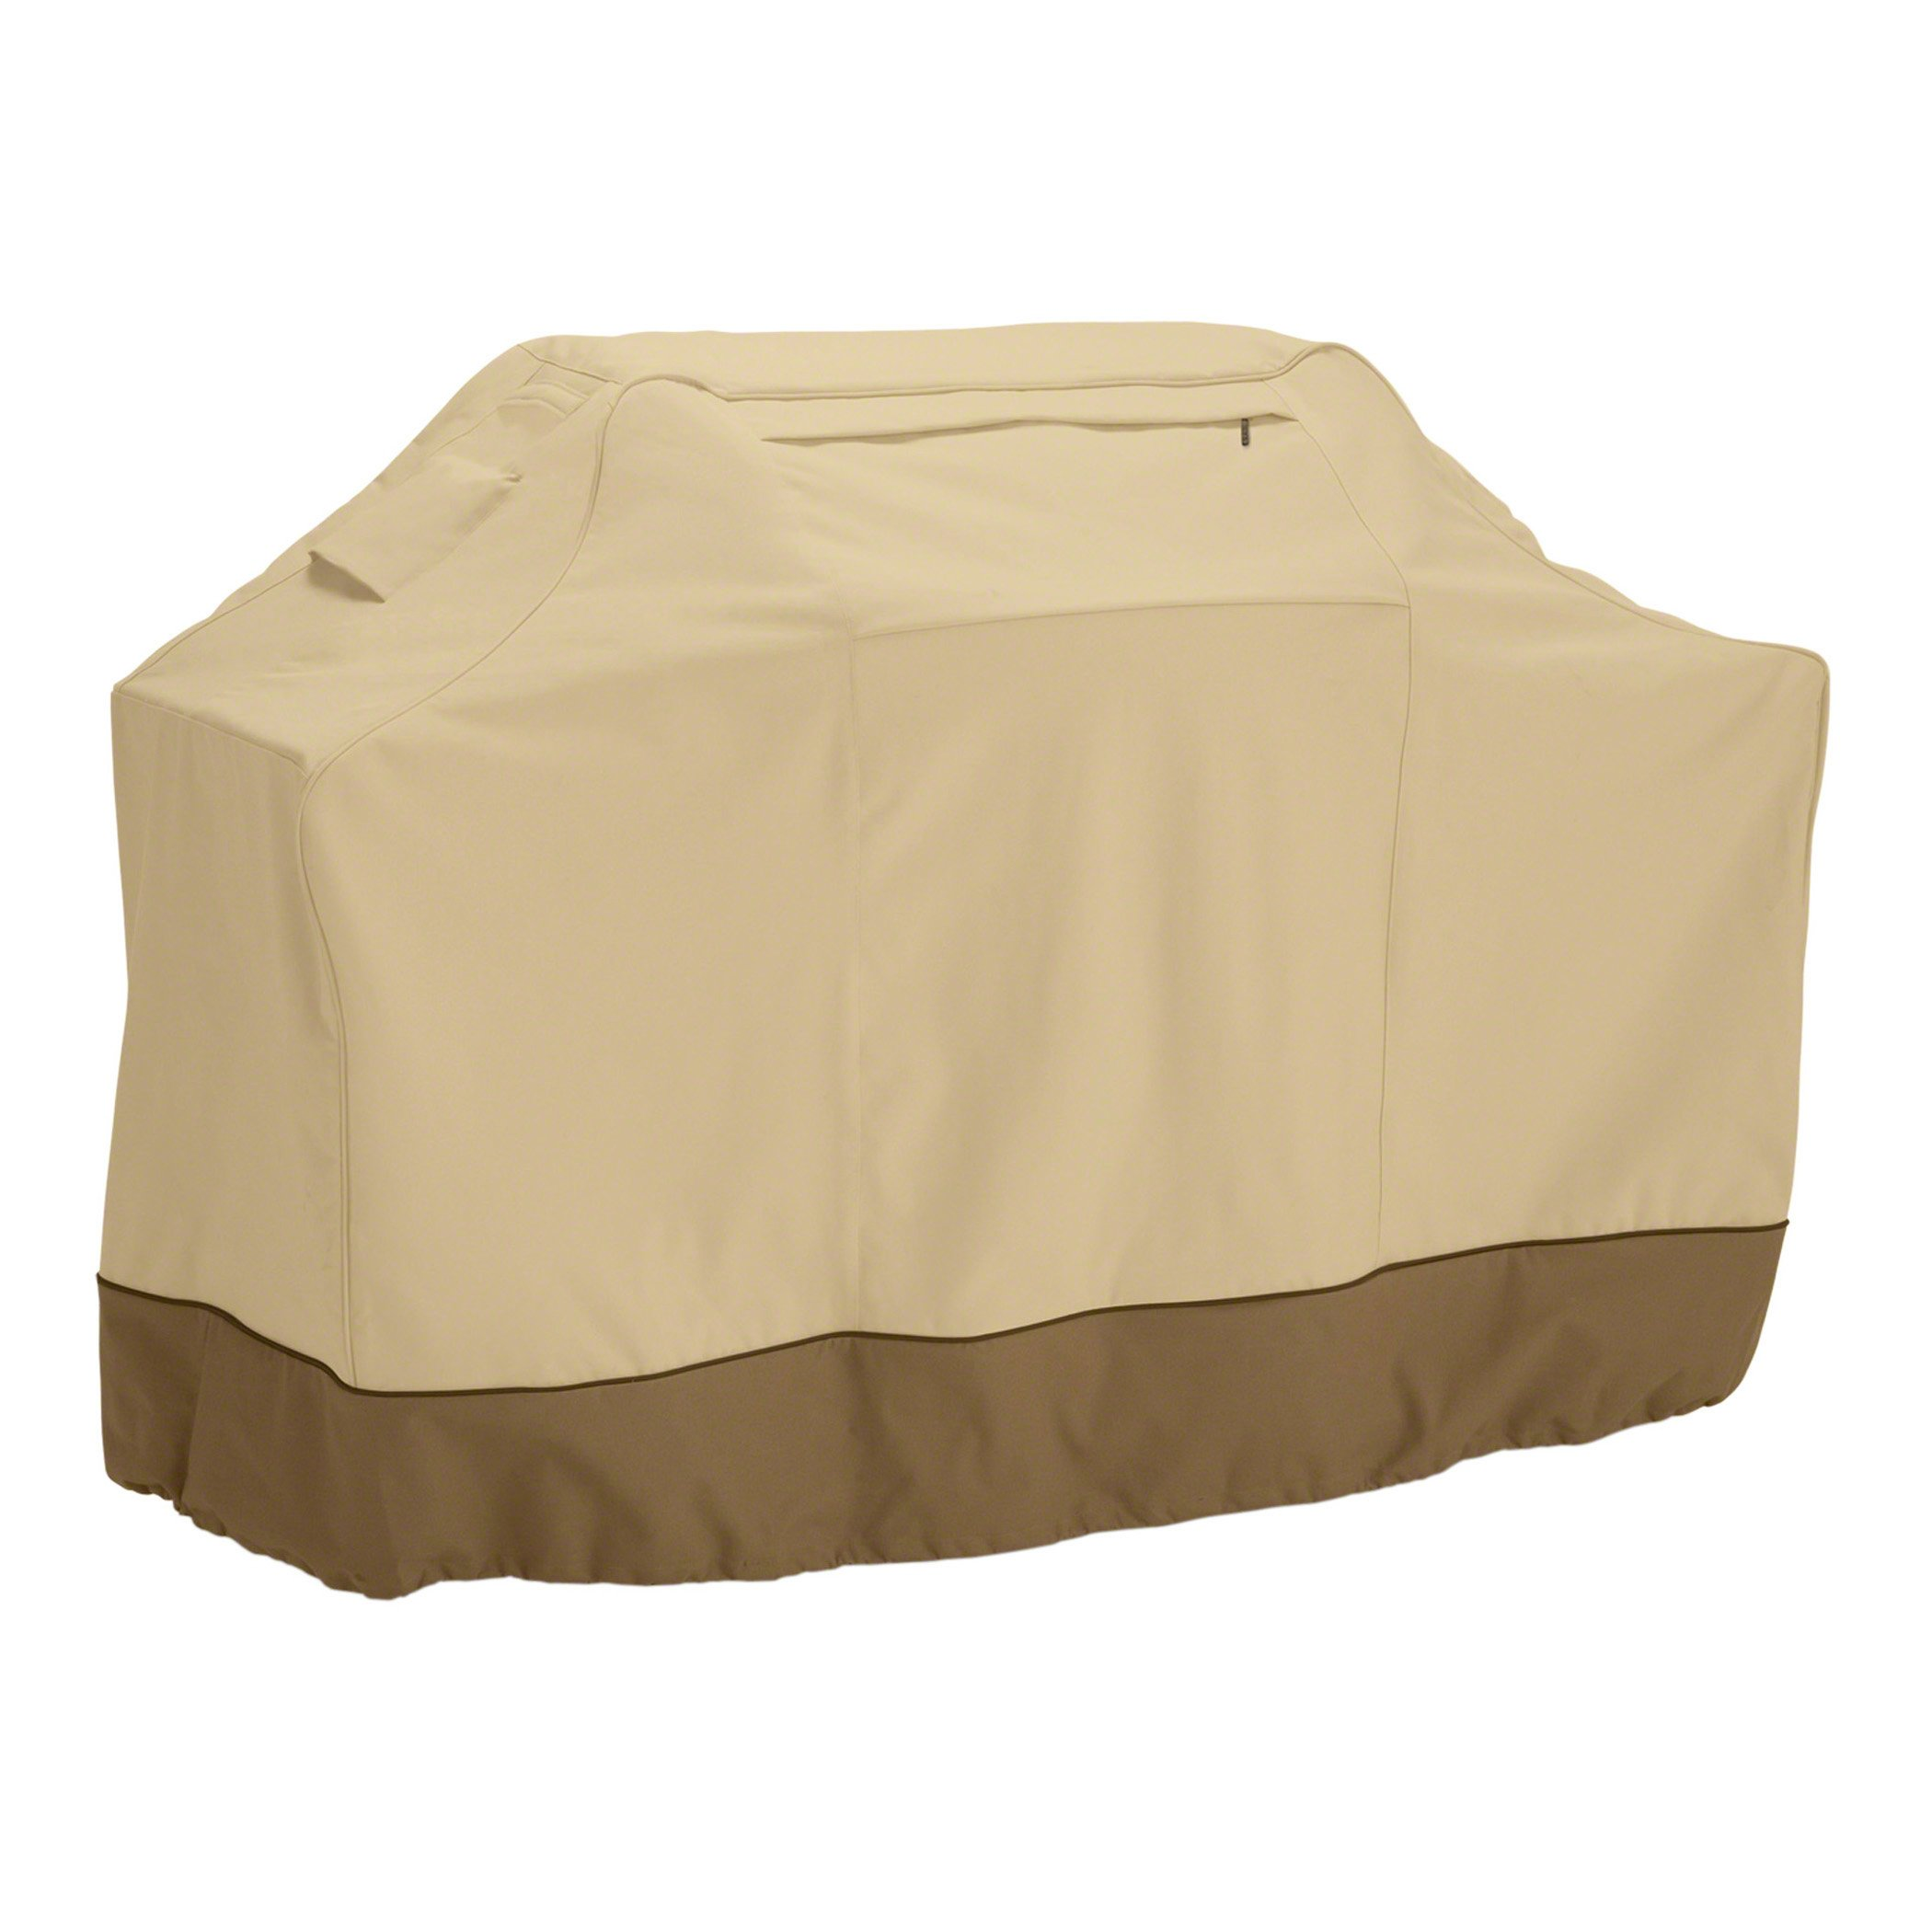 Classic Accessories Veranda Grill Cover fits the Weber Genesis